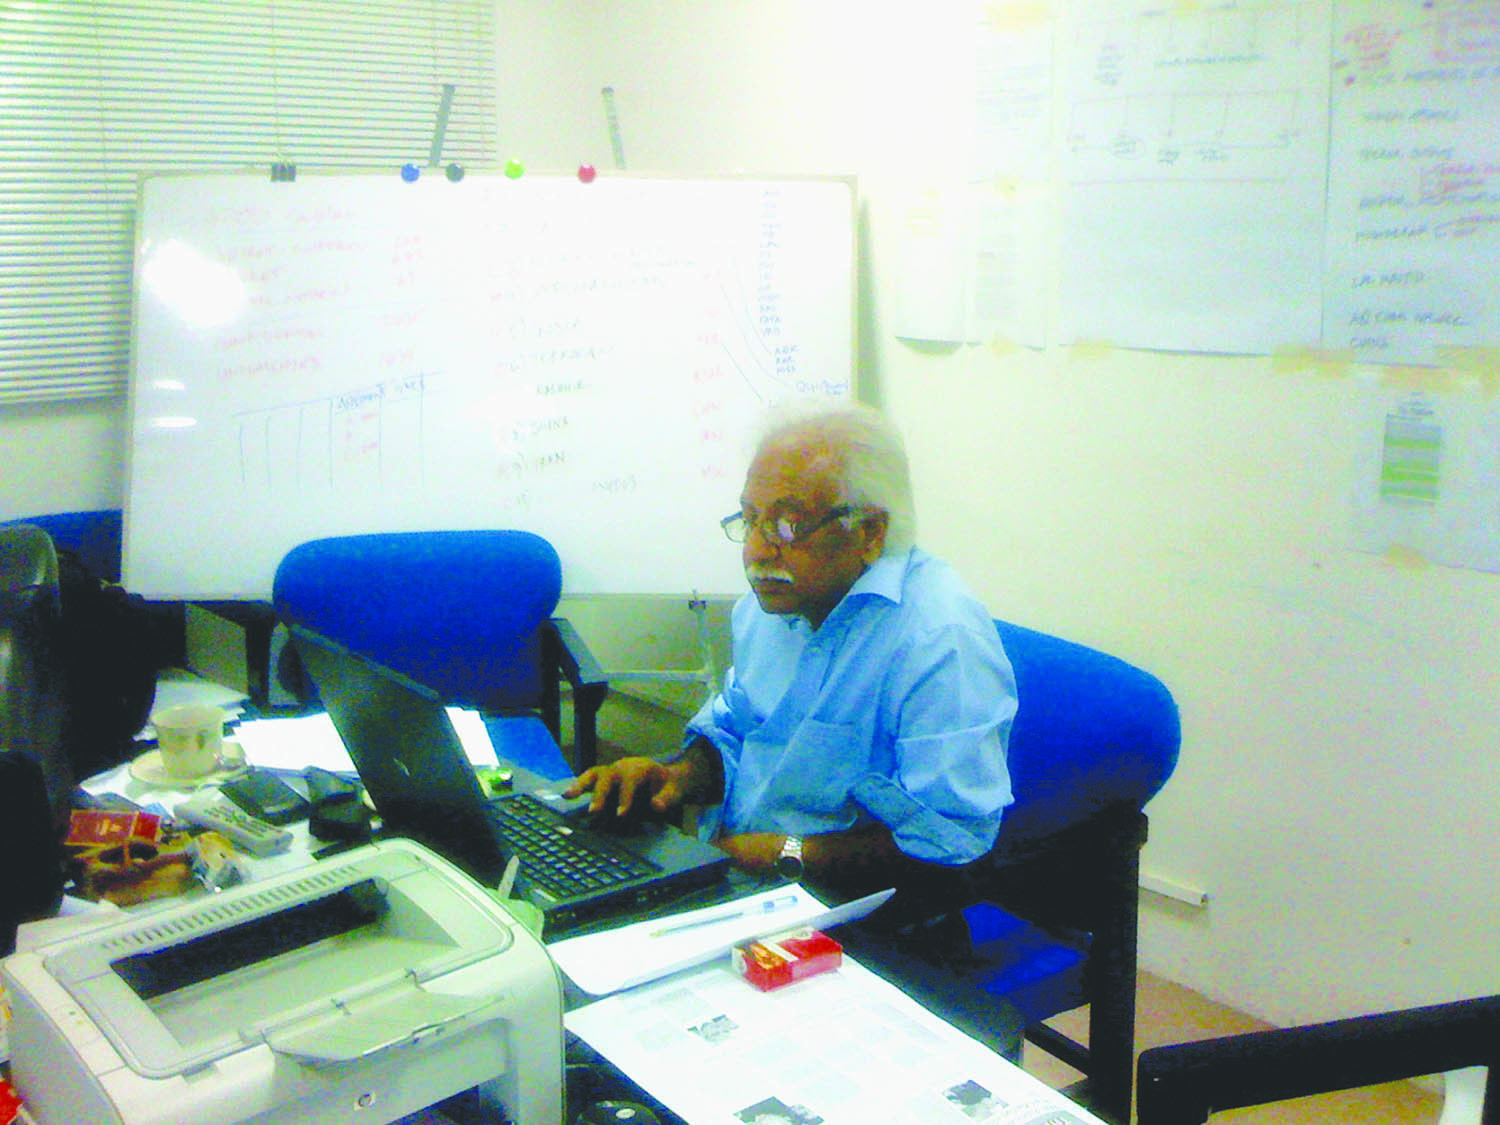 SENIOR Journalist Idrees Bakhtiar seen at work in the 'special' newsroom that was set up at Dawn to select and redact Wikileaks material for publication.